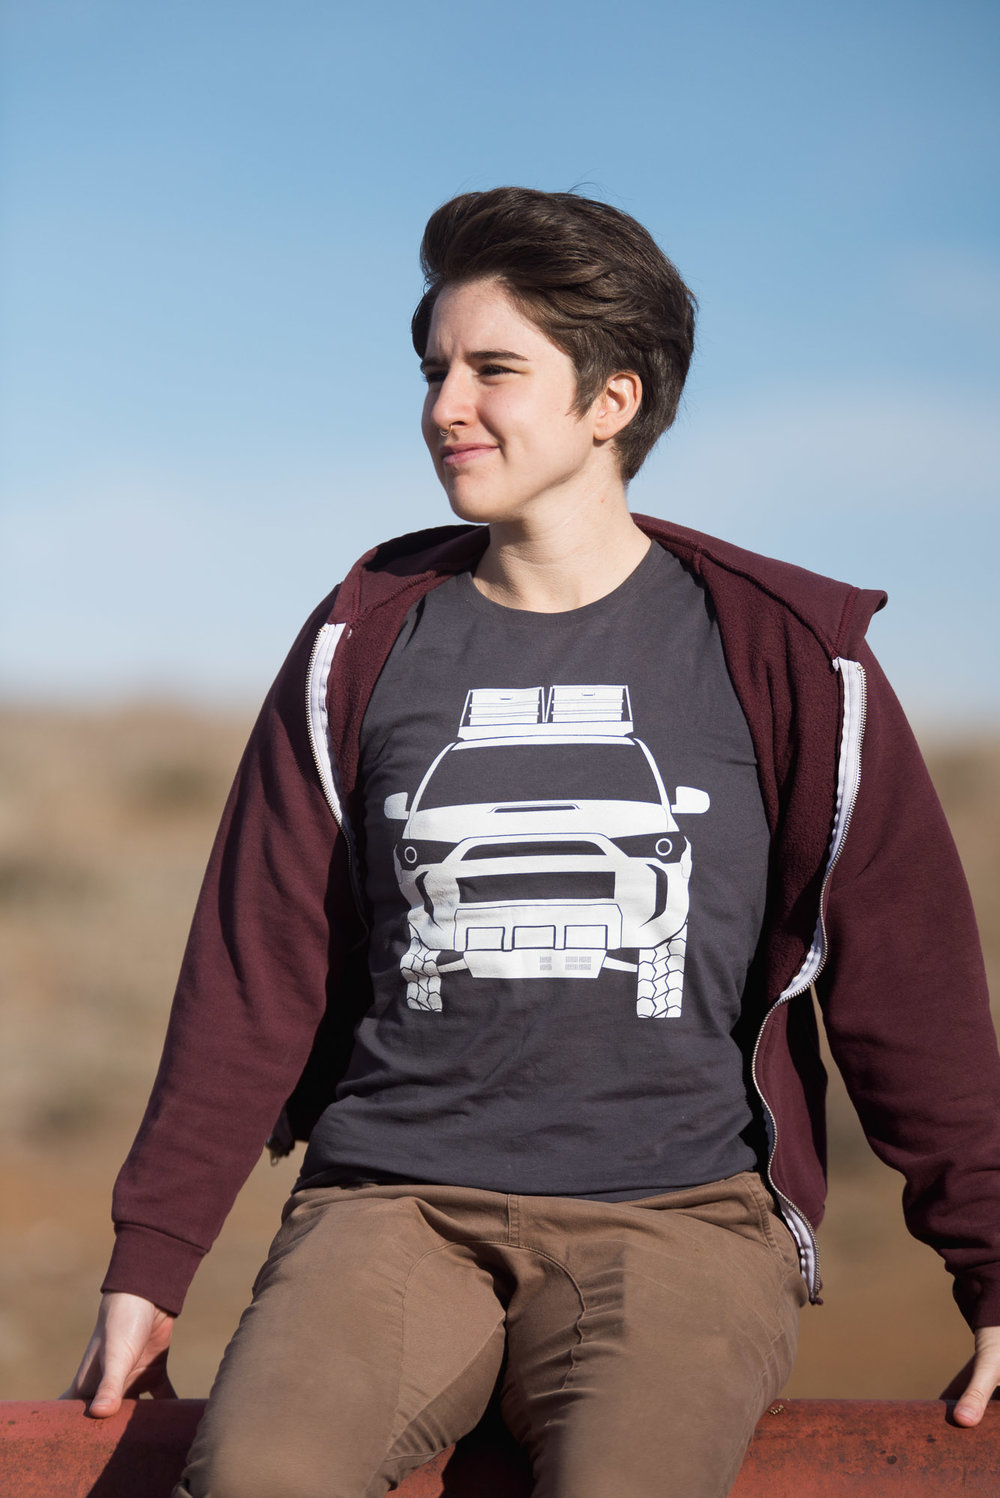 4runner-shirt-5th-gen